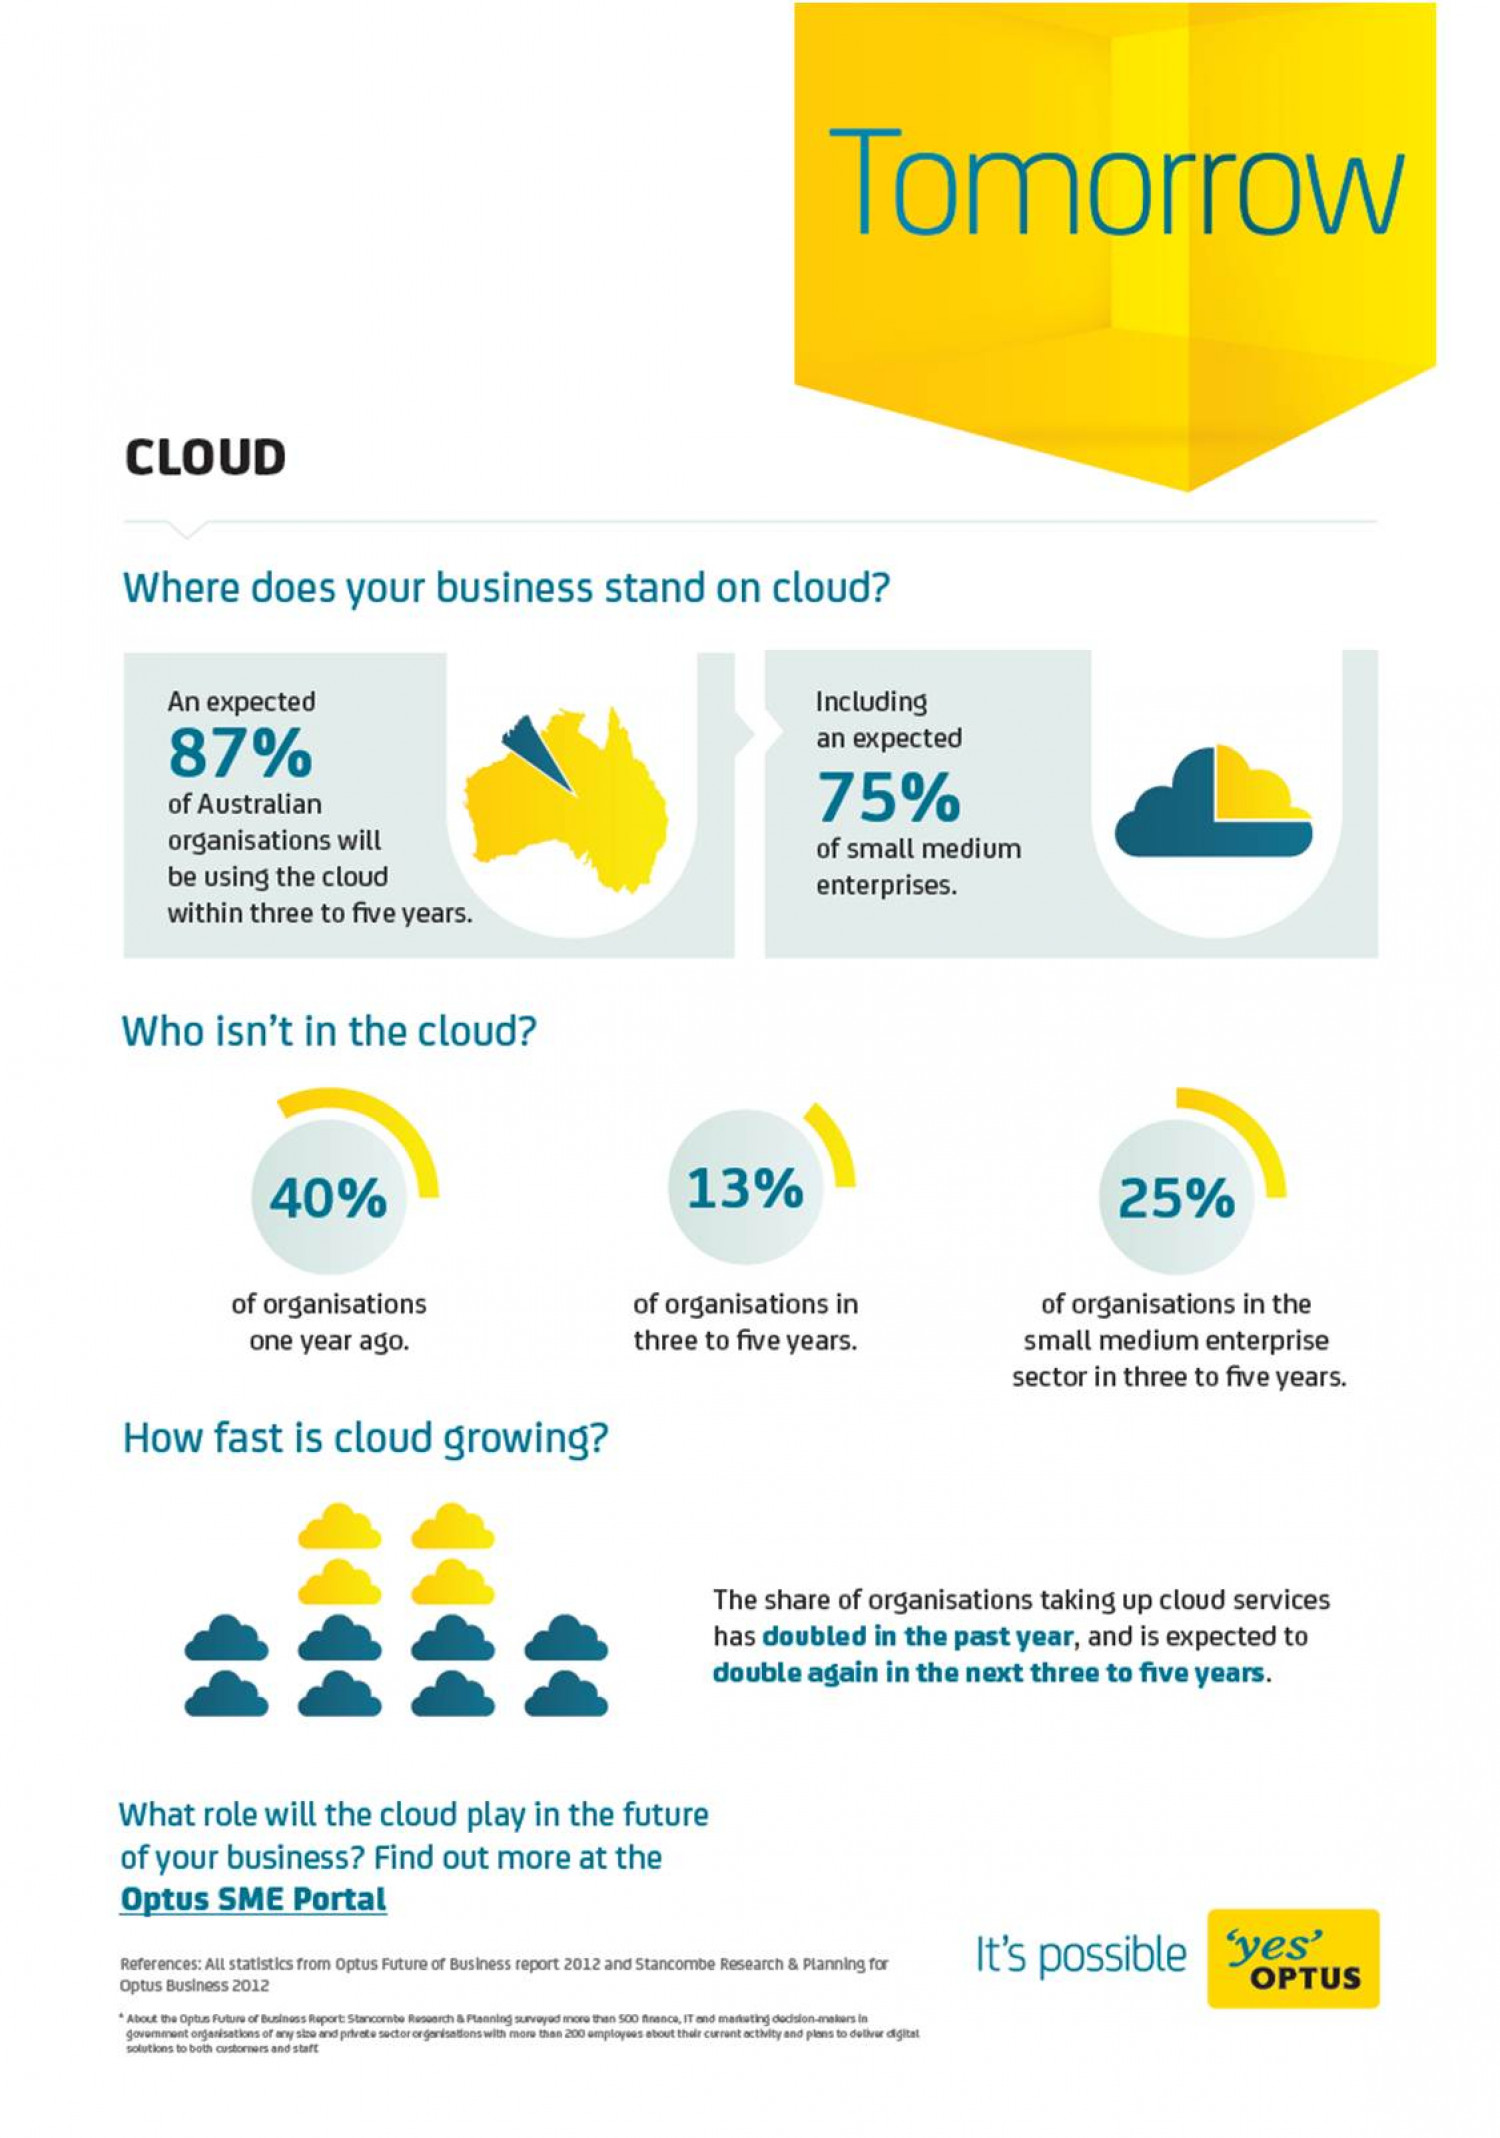 Optus Business - Cloud at a Glance Infographic